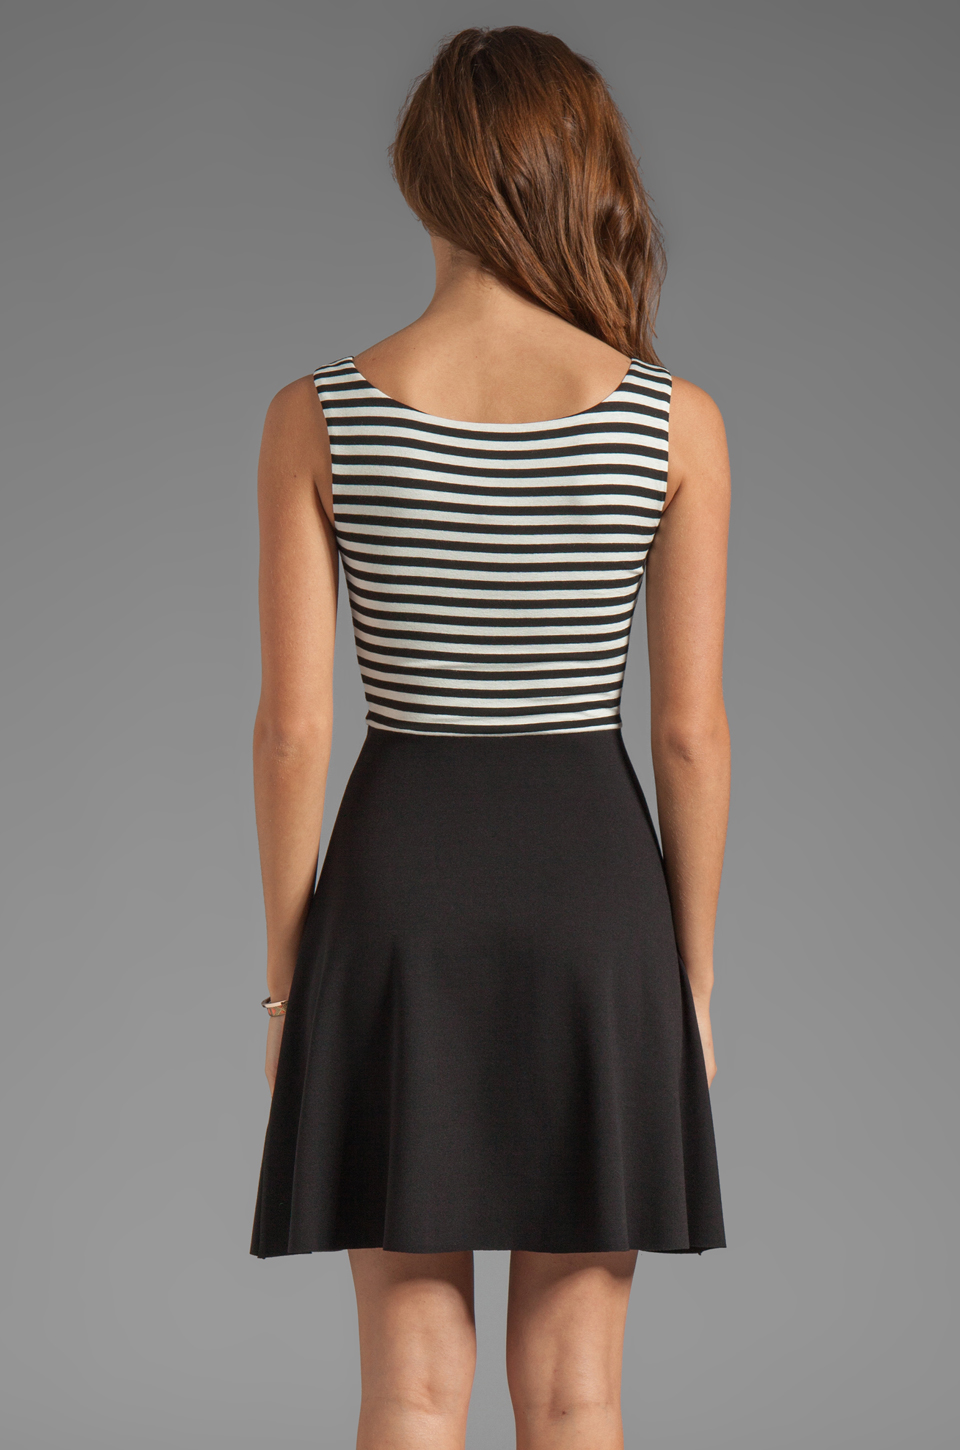 Bailey 44 Udon Dress in Black/Creme